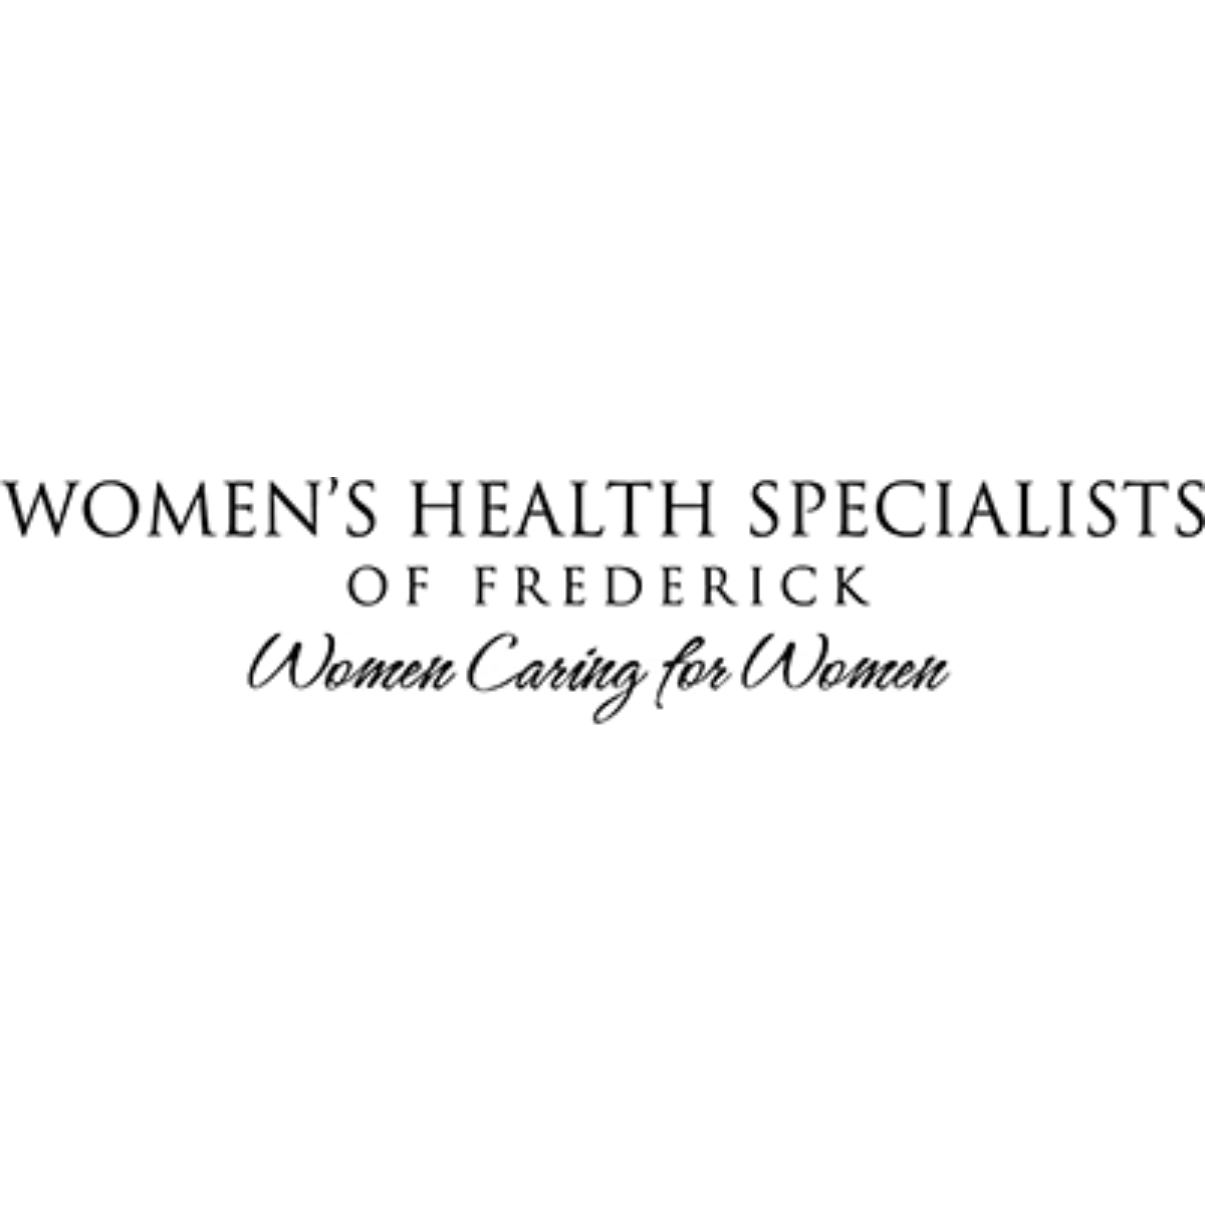 Women's Health Specialists of Frederick